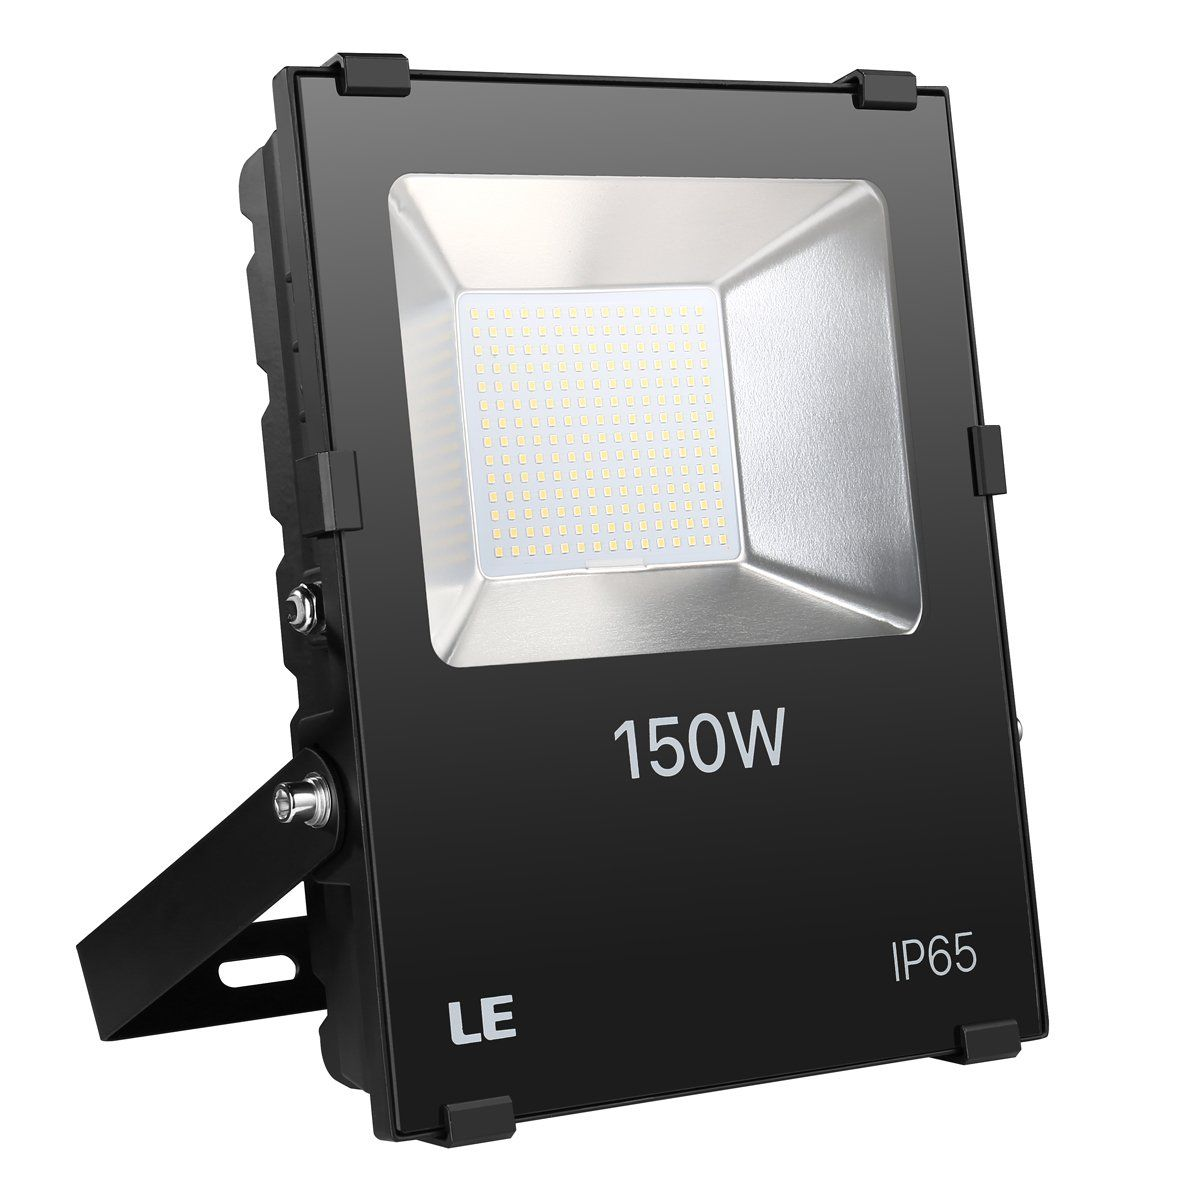 Commercial Outdoor Led Flood Light Fixtures Le 150W 16500Lm Super Bright Outdoor Led Flood Lights Daylight